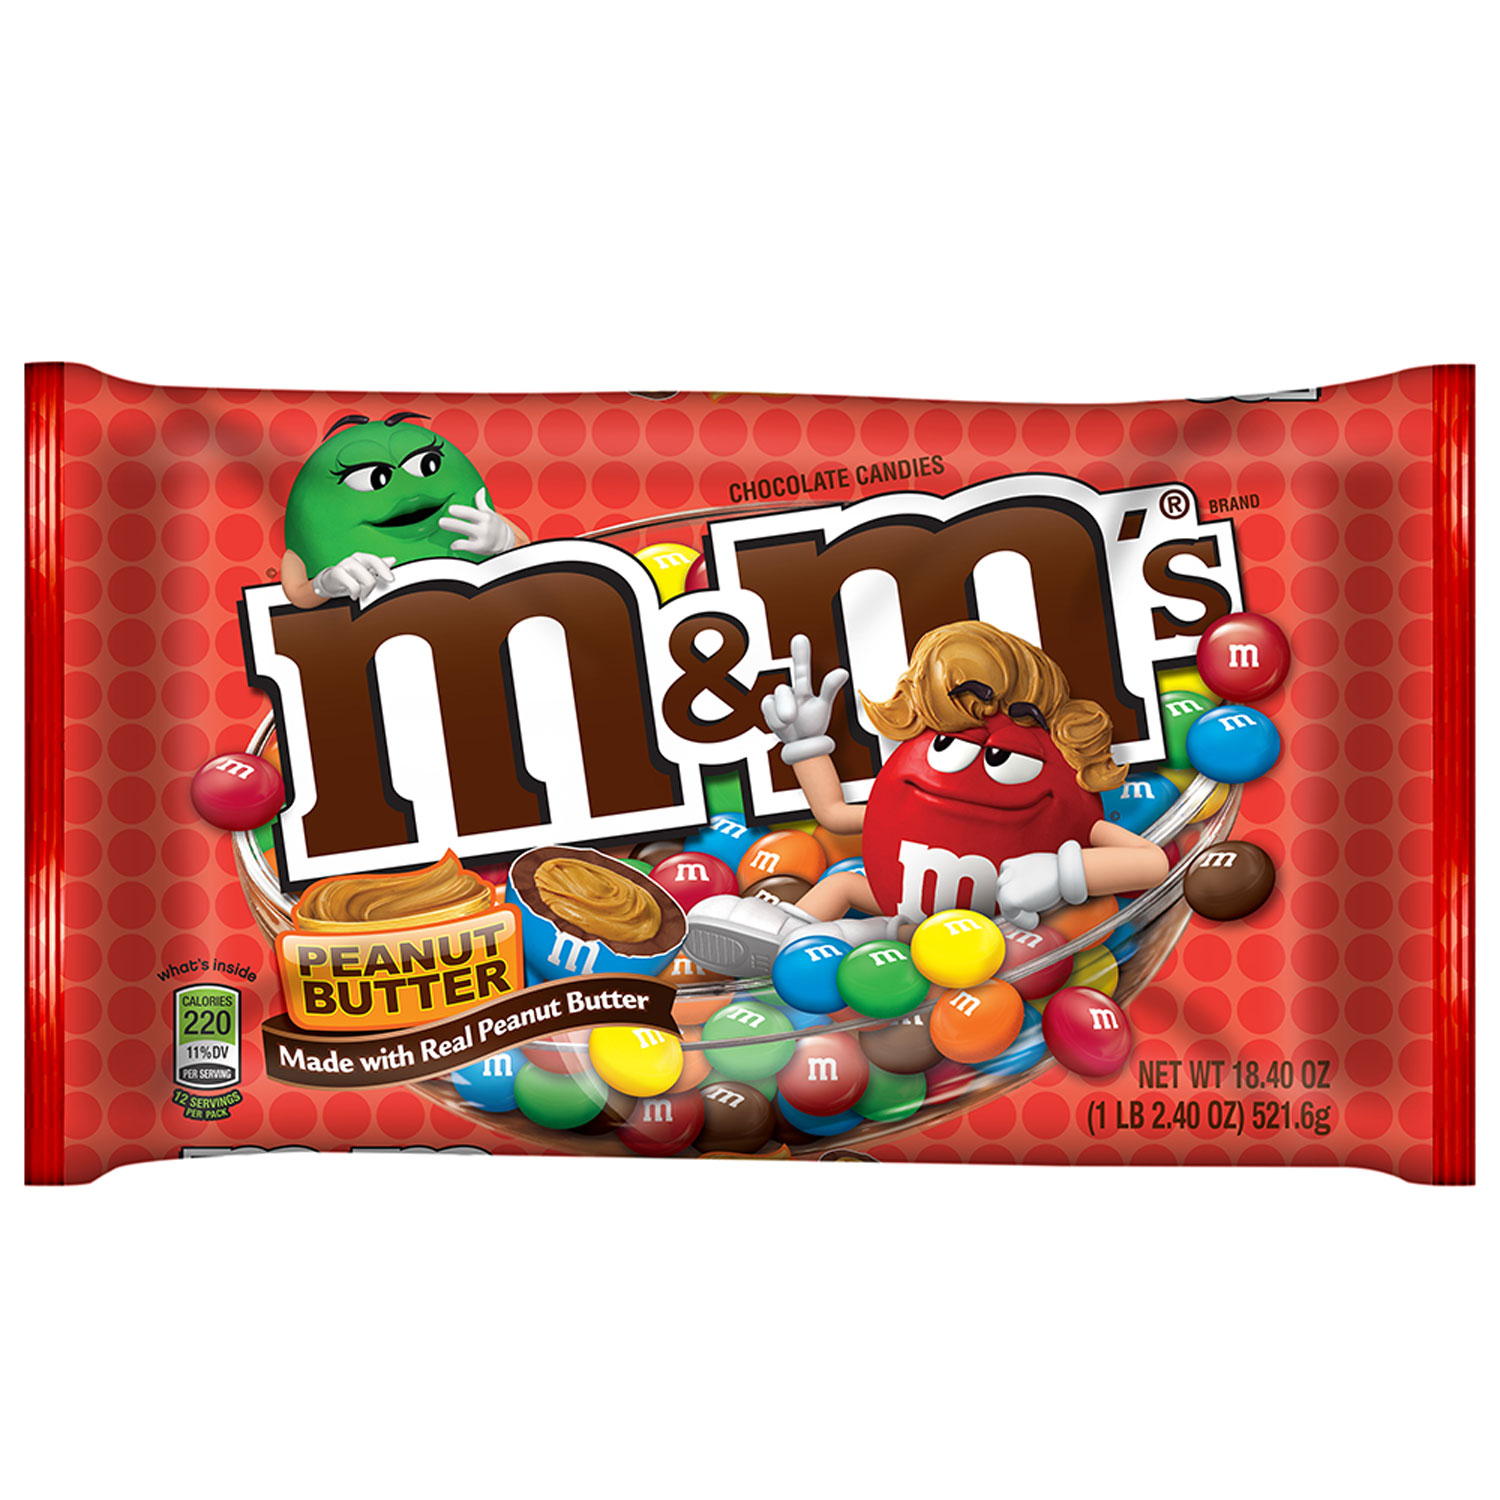 M&m's clipart peanut chocolate 18 4 oz Butter Candy